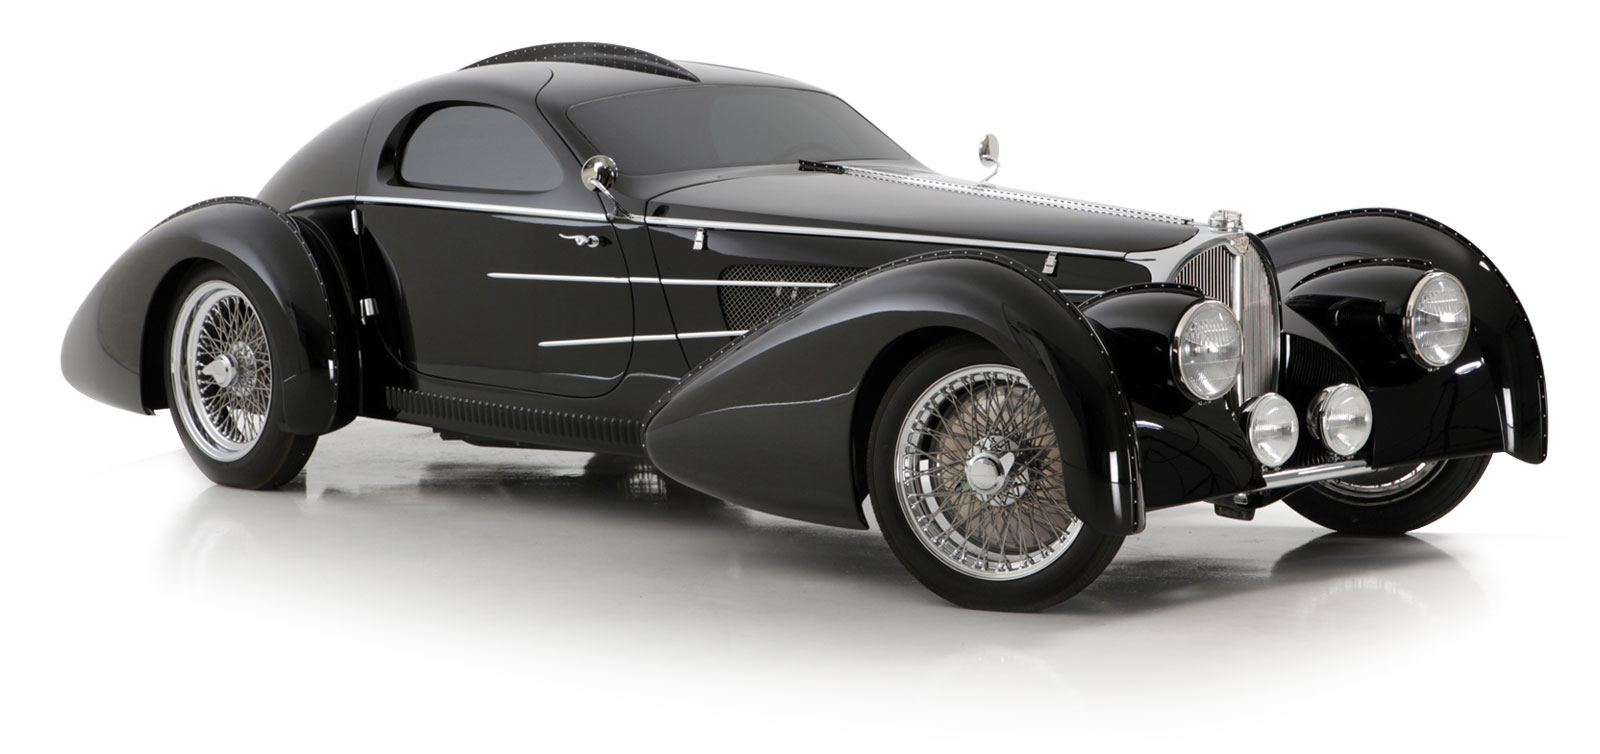 The Pacific - A Modern Tribute to the Classic 1937 Type 57S Bugatti